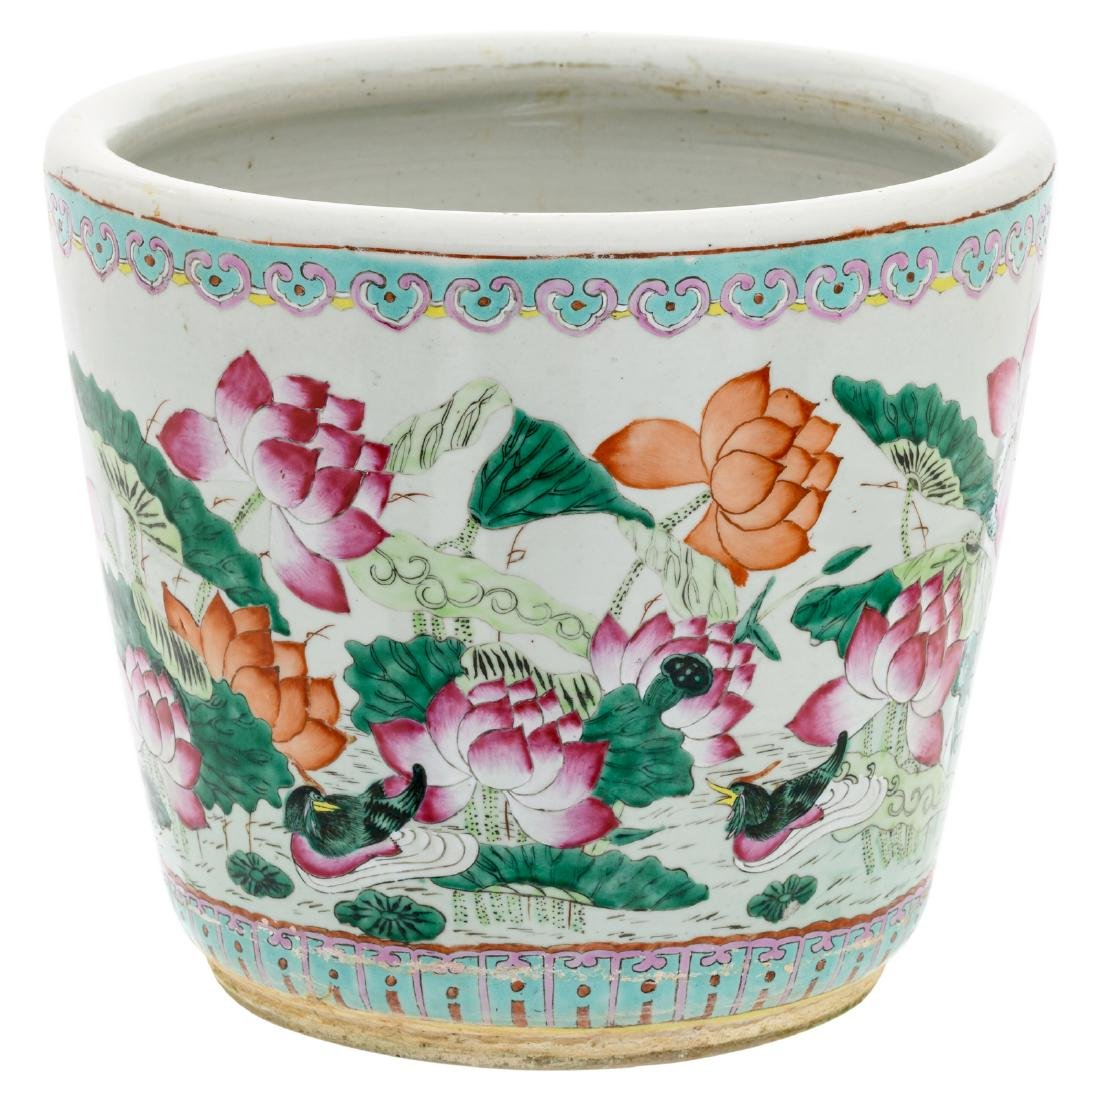 A Chinese famille rose jardiniere, overall decorated